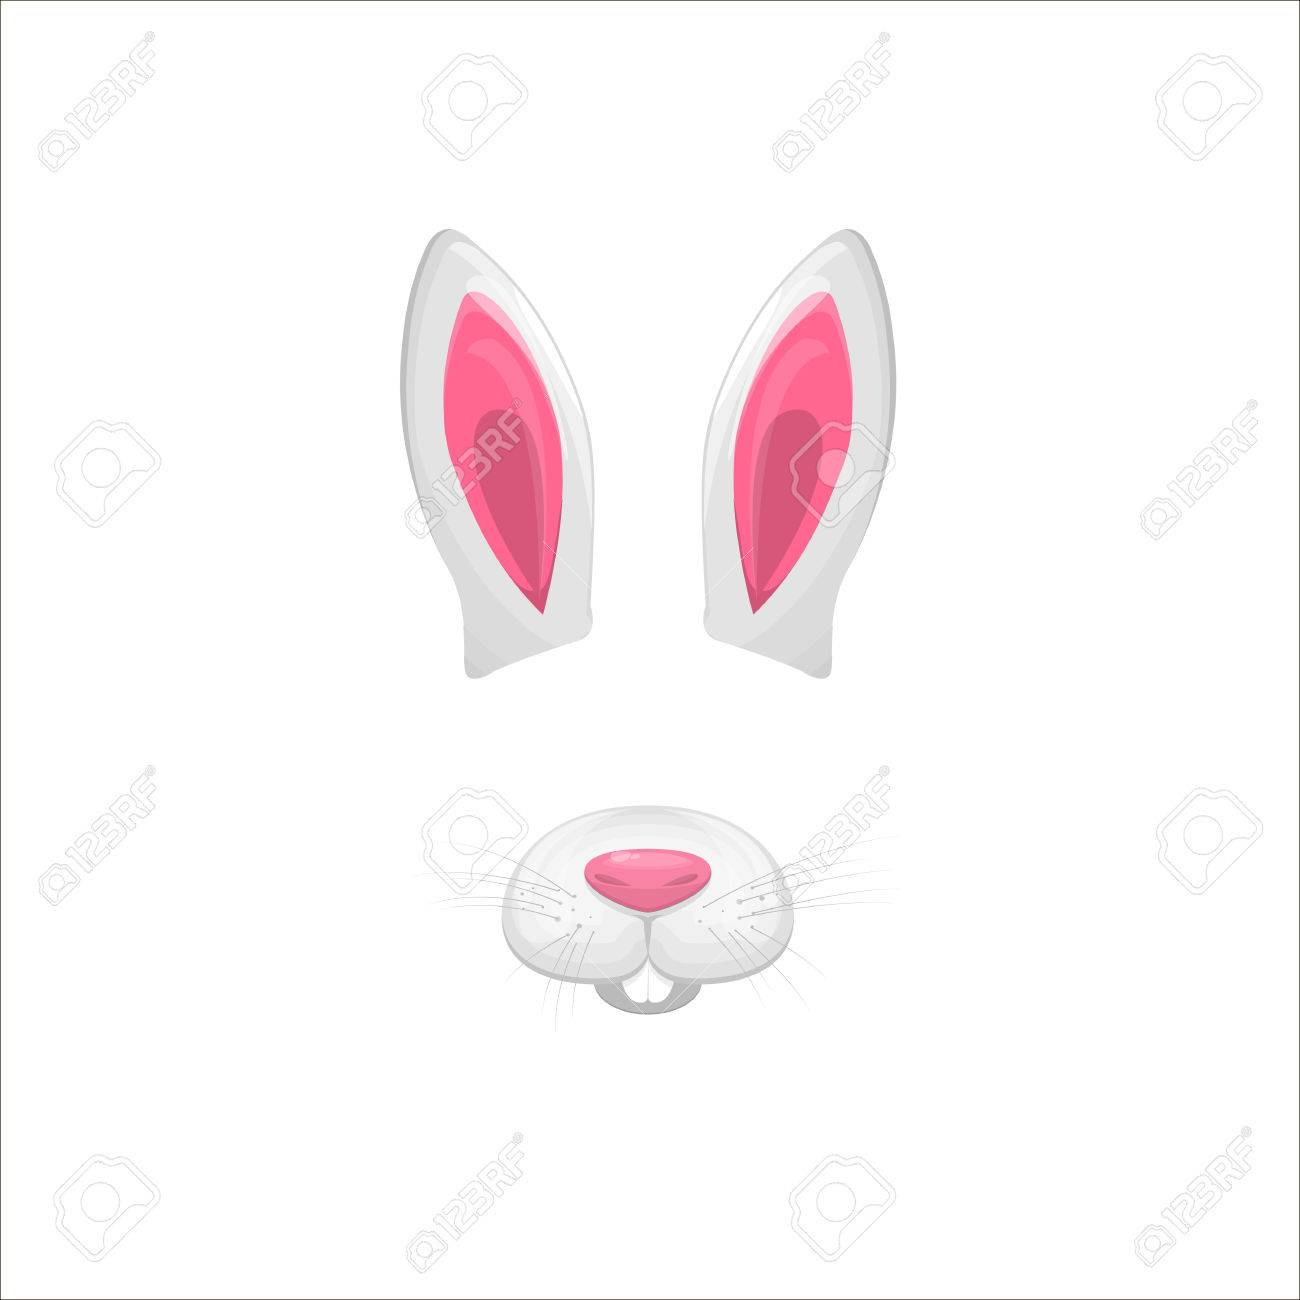 Filter effect clipart image free Rabbit face elements. Vector illustration. Animal character ears and ... image free